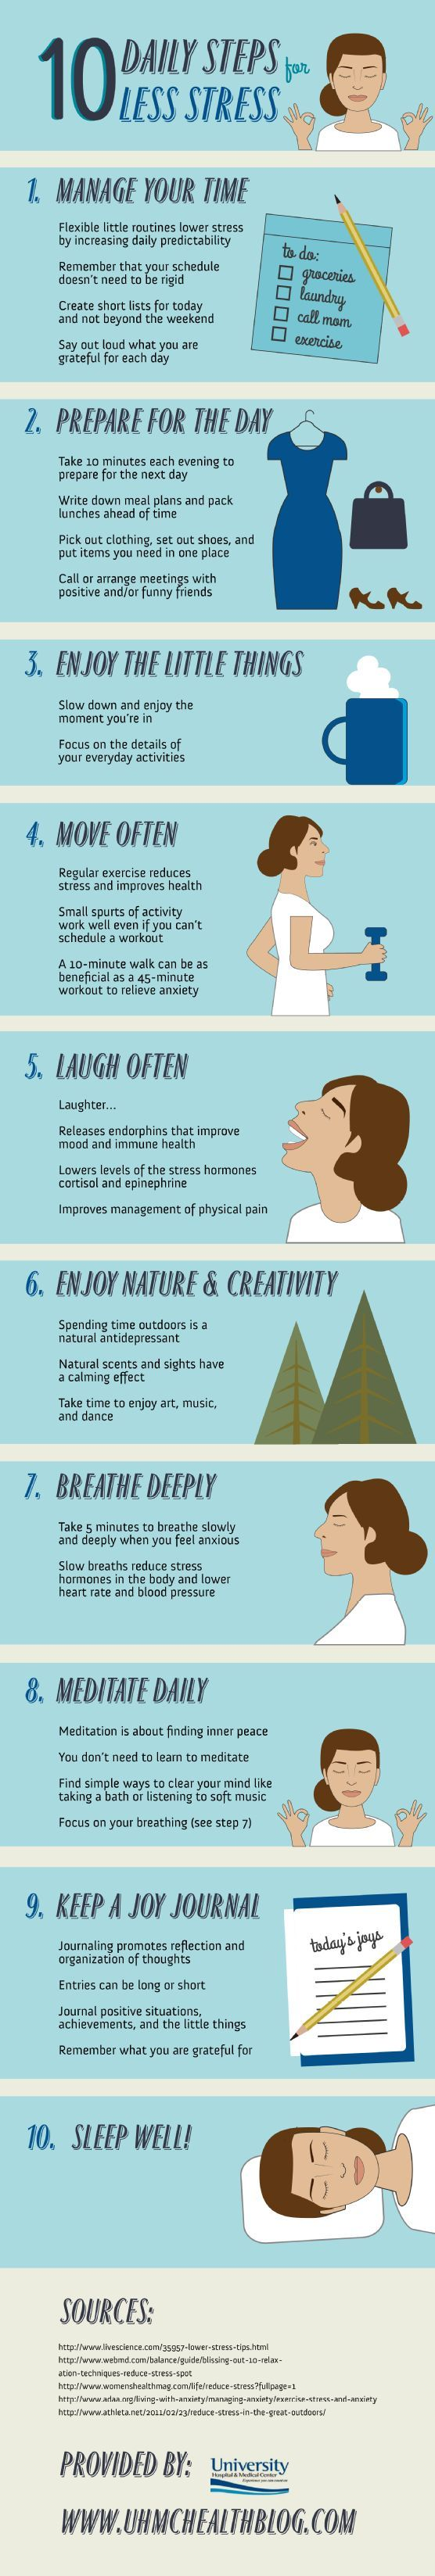 "HEALTHY LIFESTYLE -         ""10 daily steps for less stress"".:"